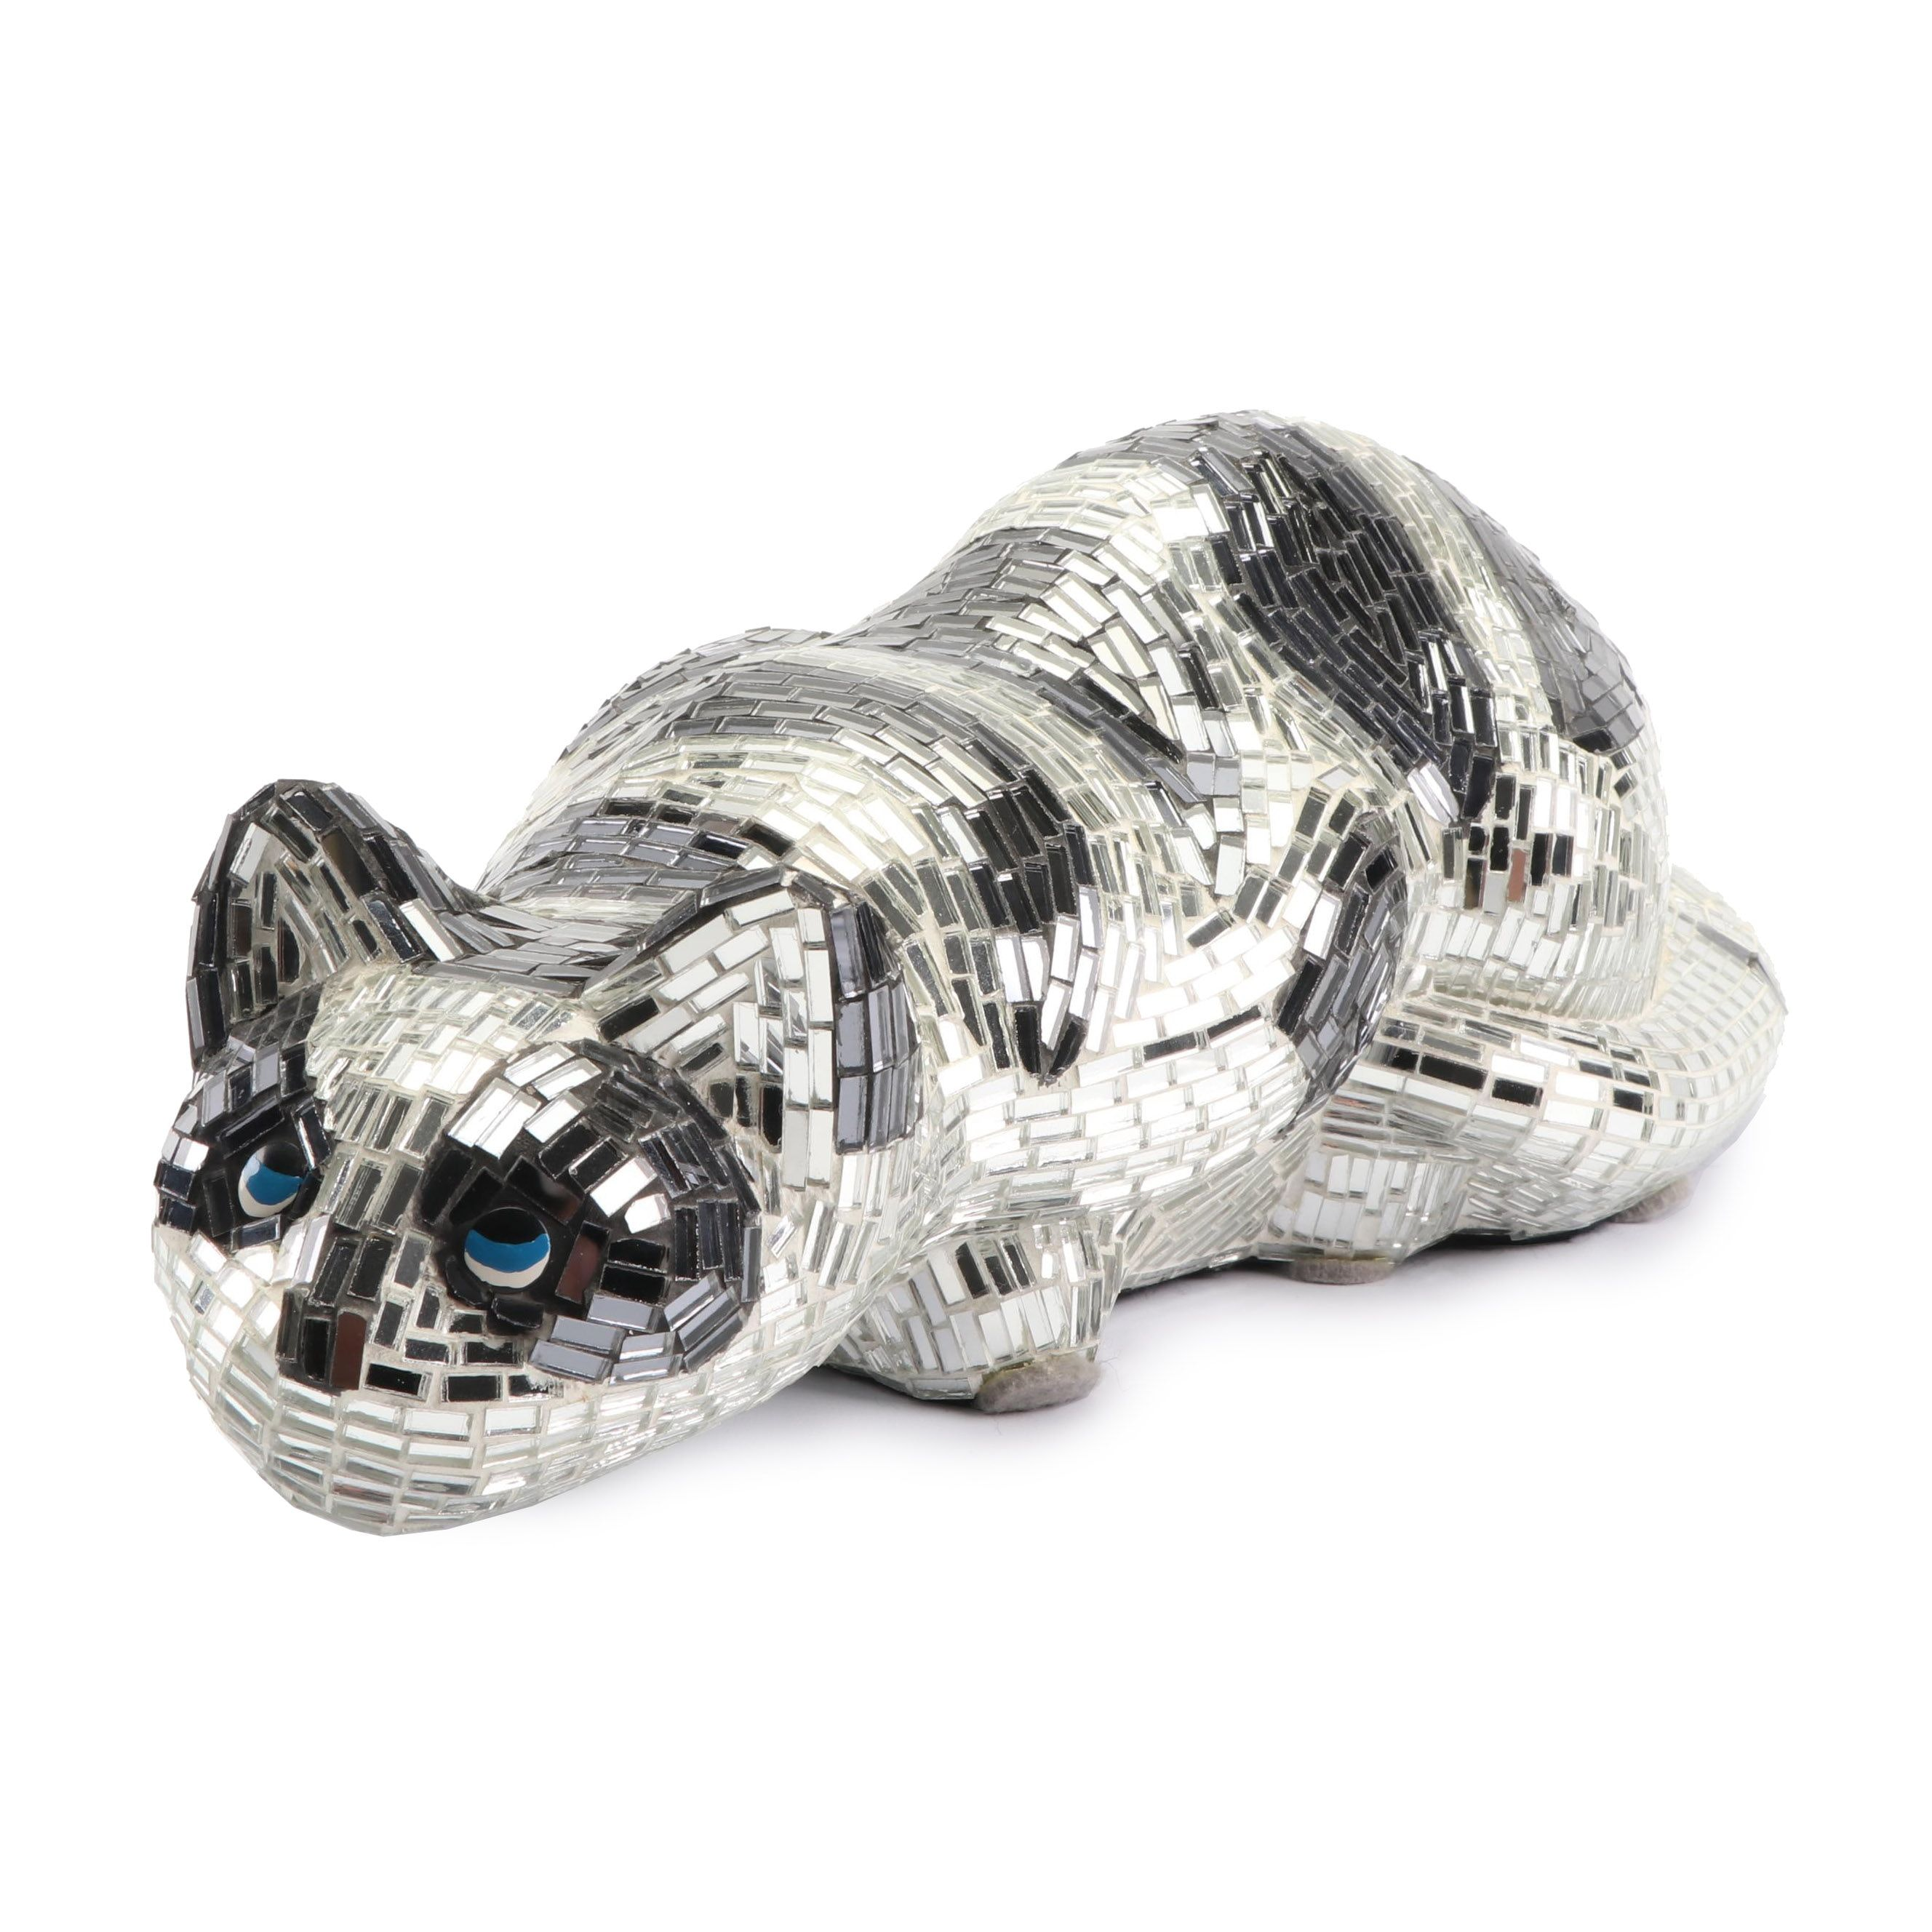 Glass Mosaic Crouching Cat Sculpture